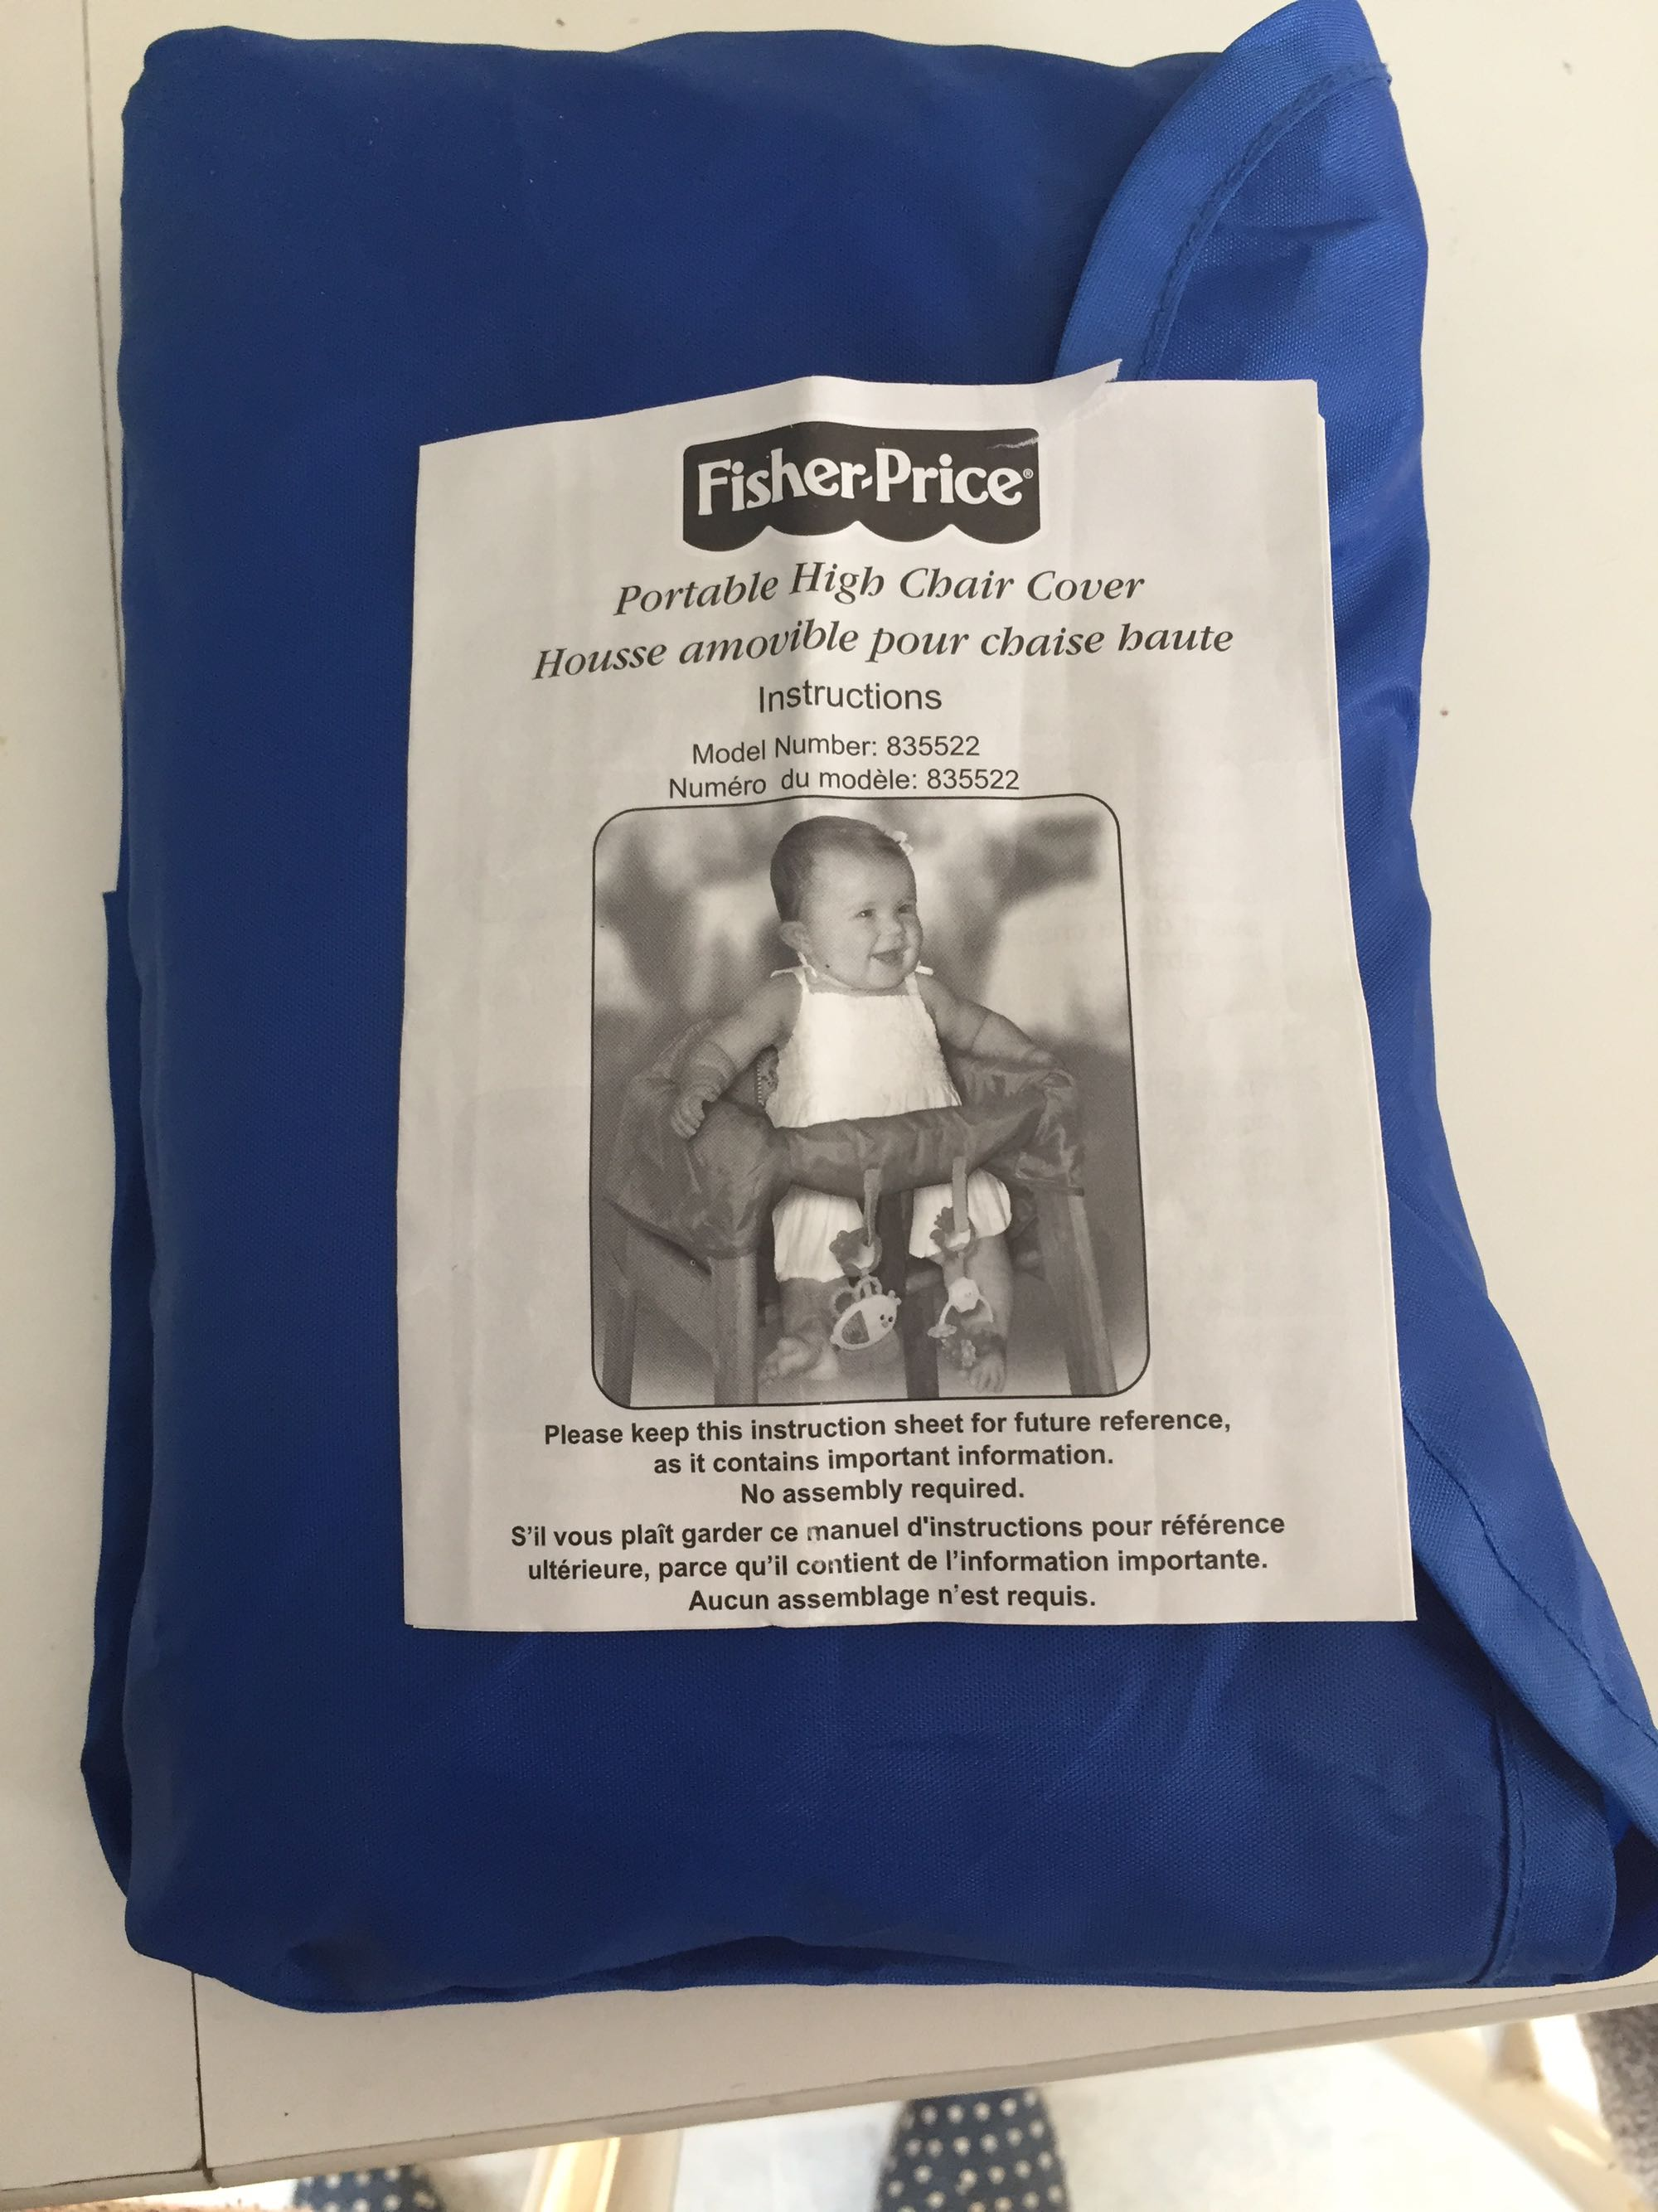 Fisher Price portable high chair cover